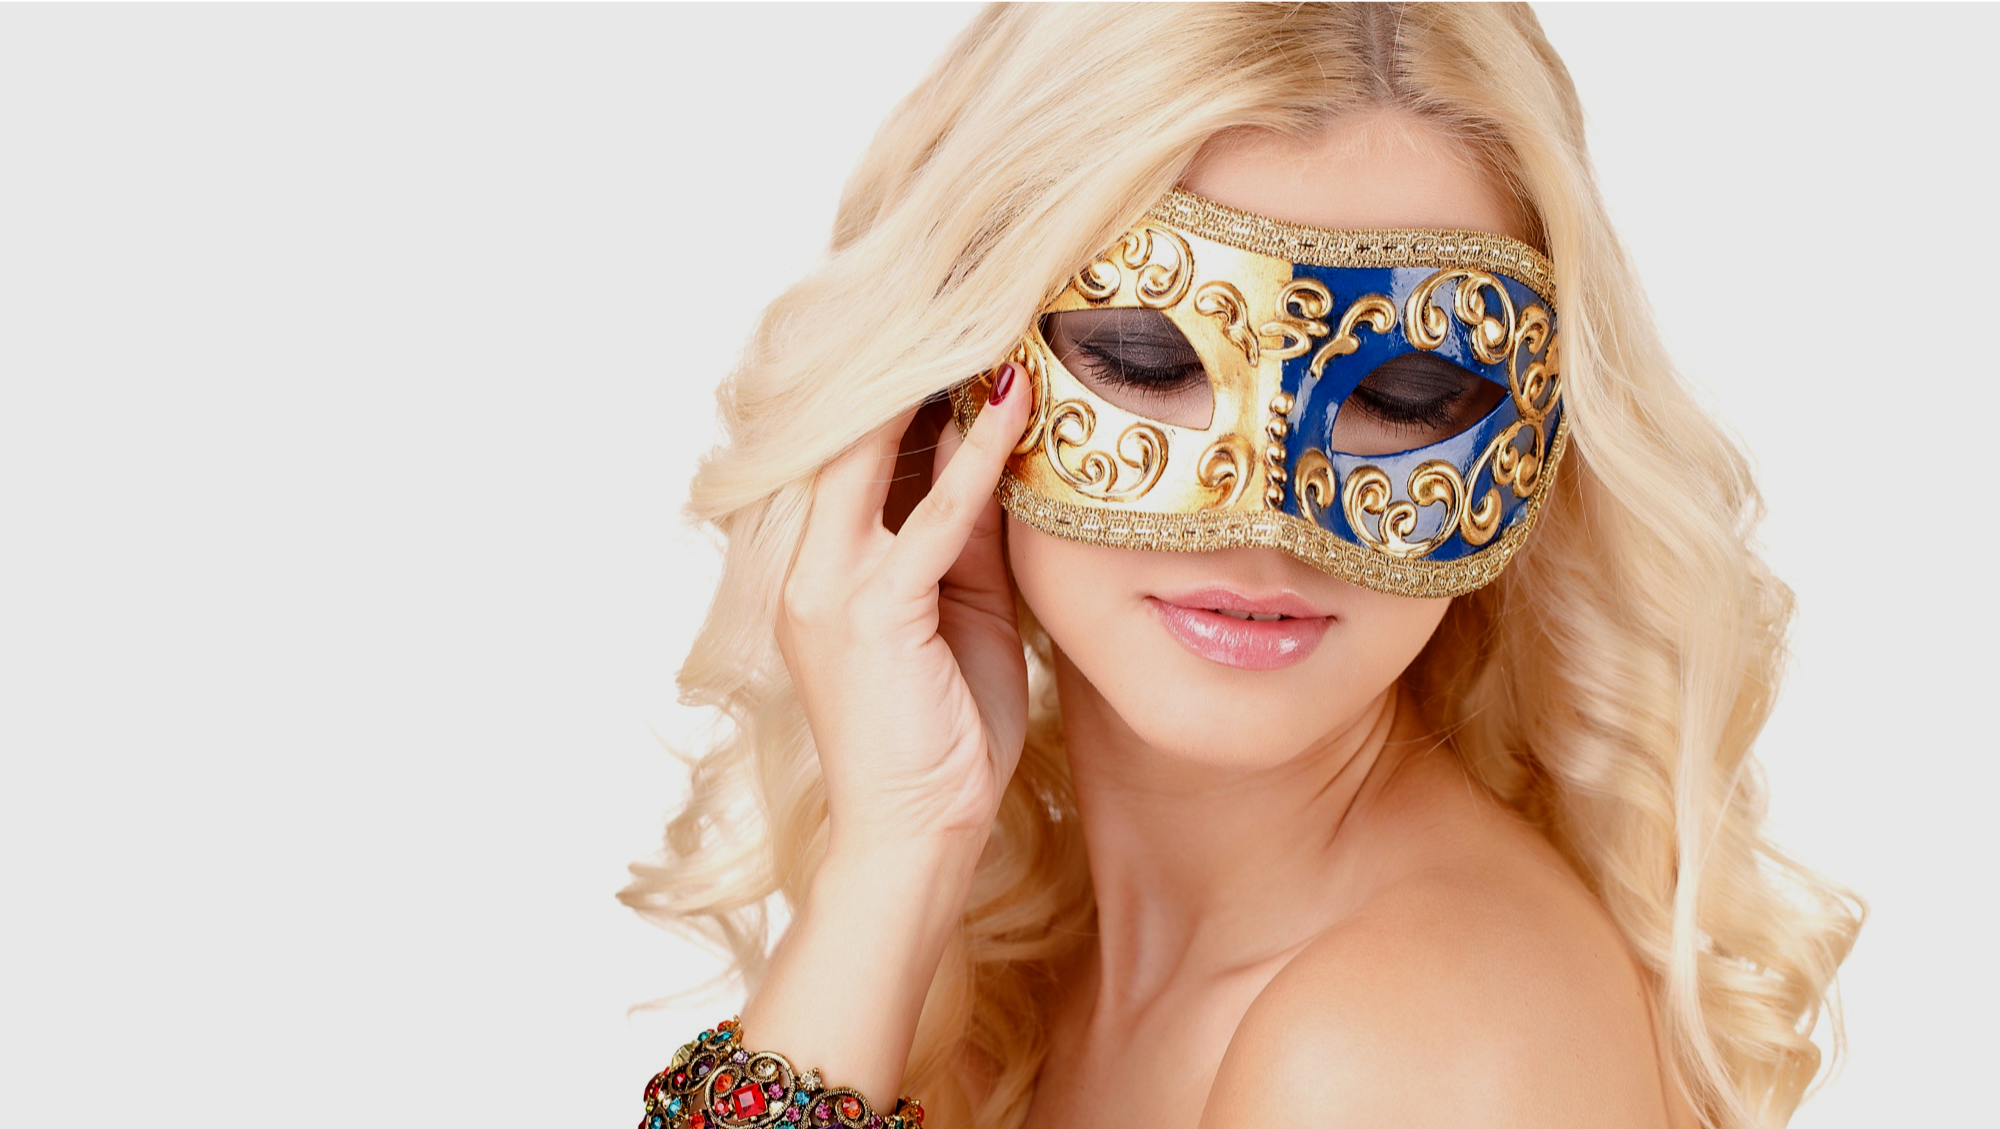 beautiful blonde woman wearing a stunning blue and gold coloured venetian mask